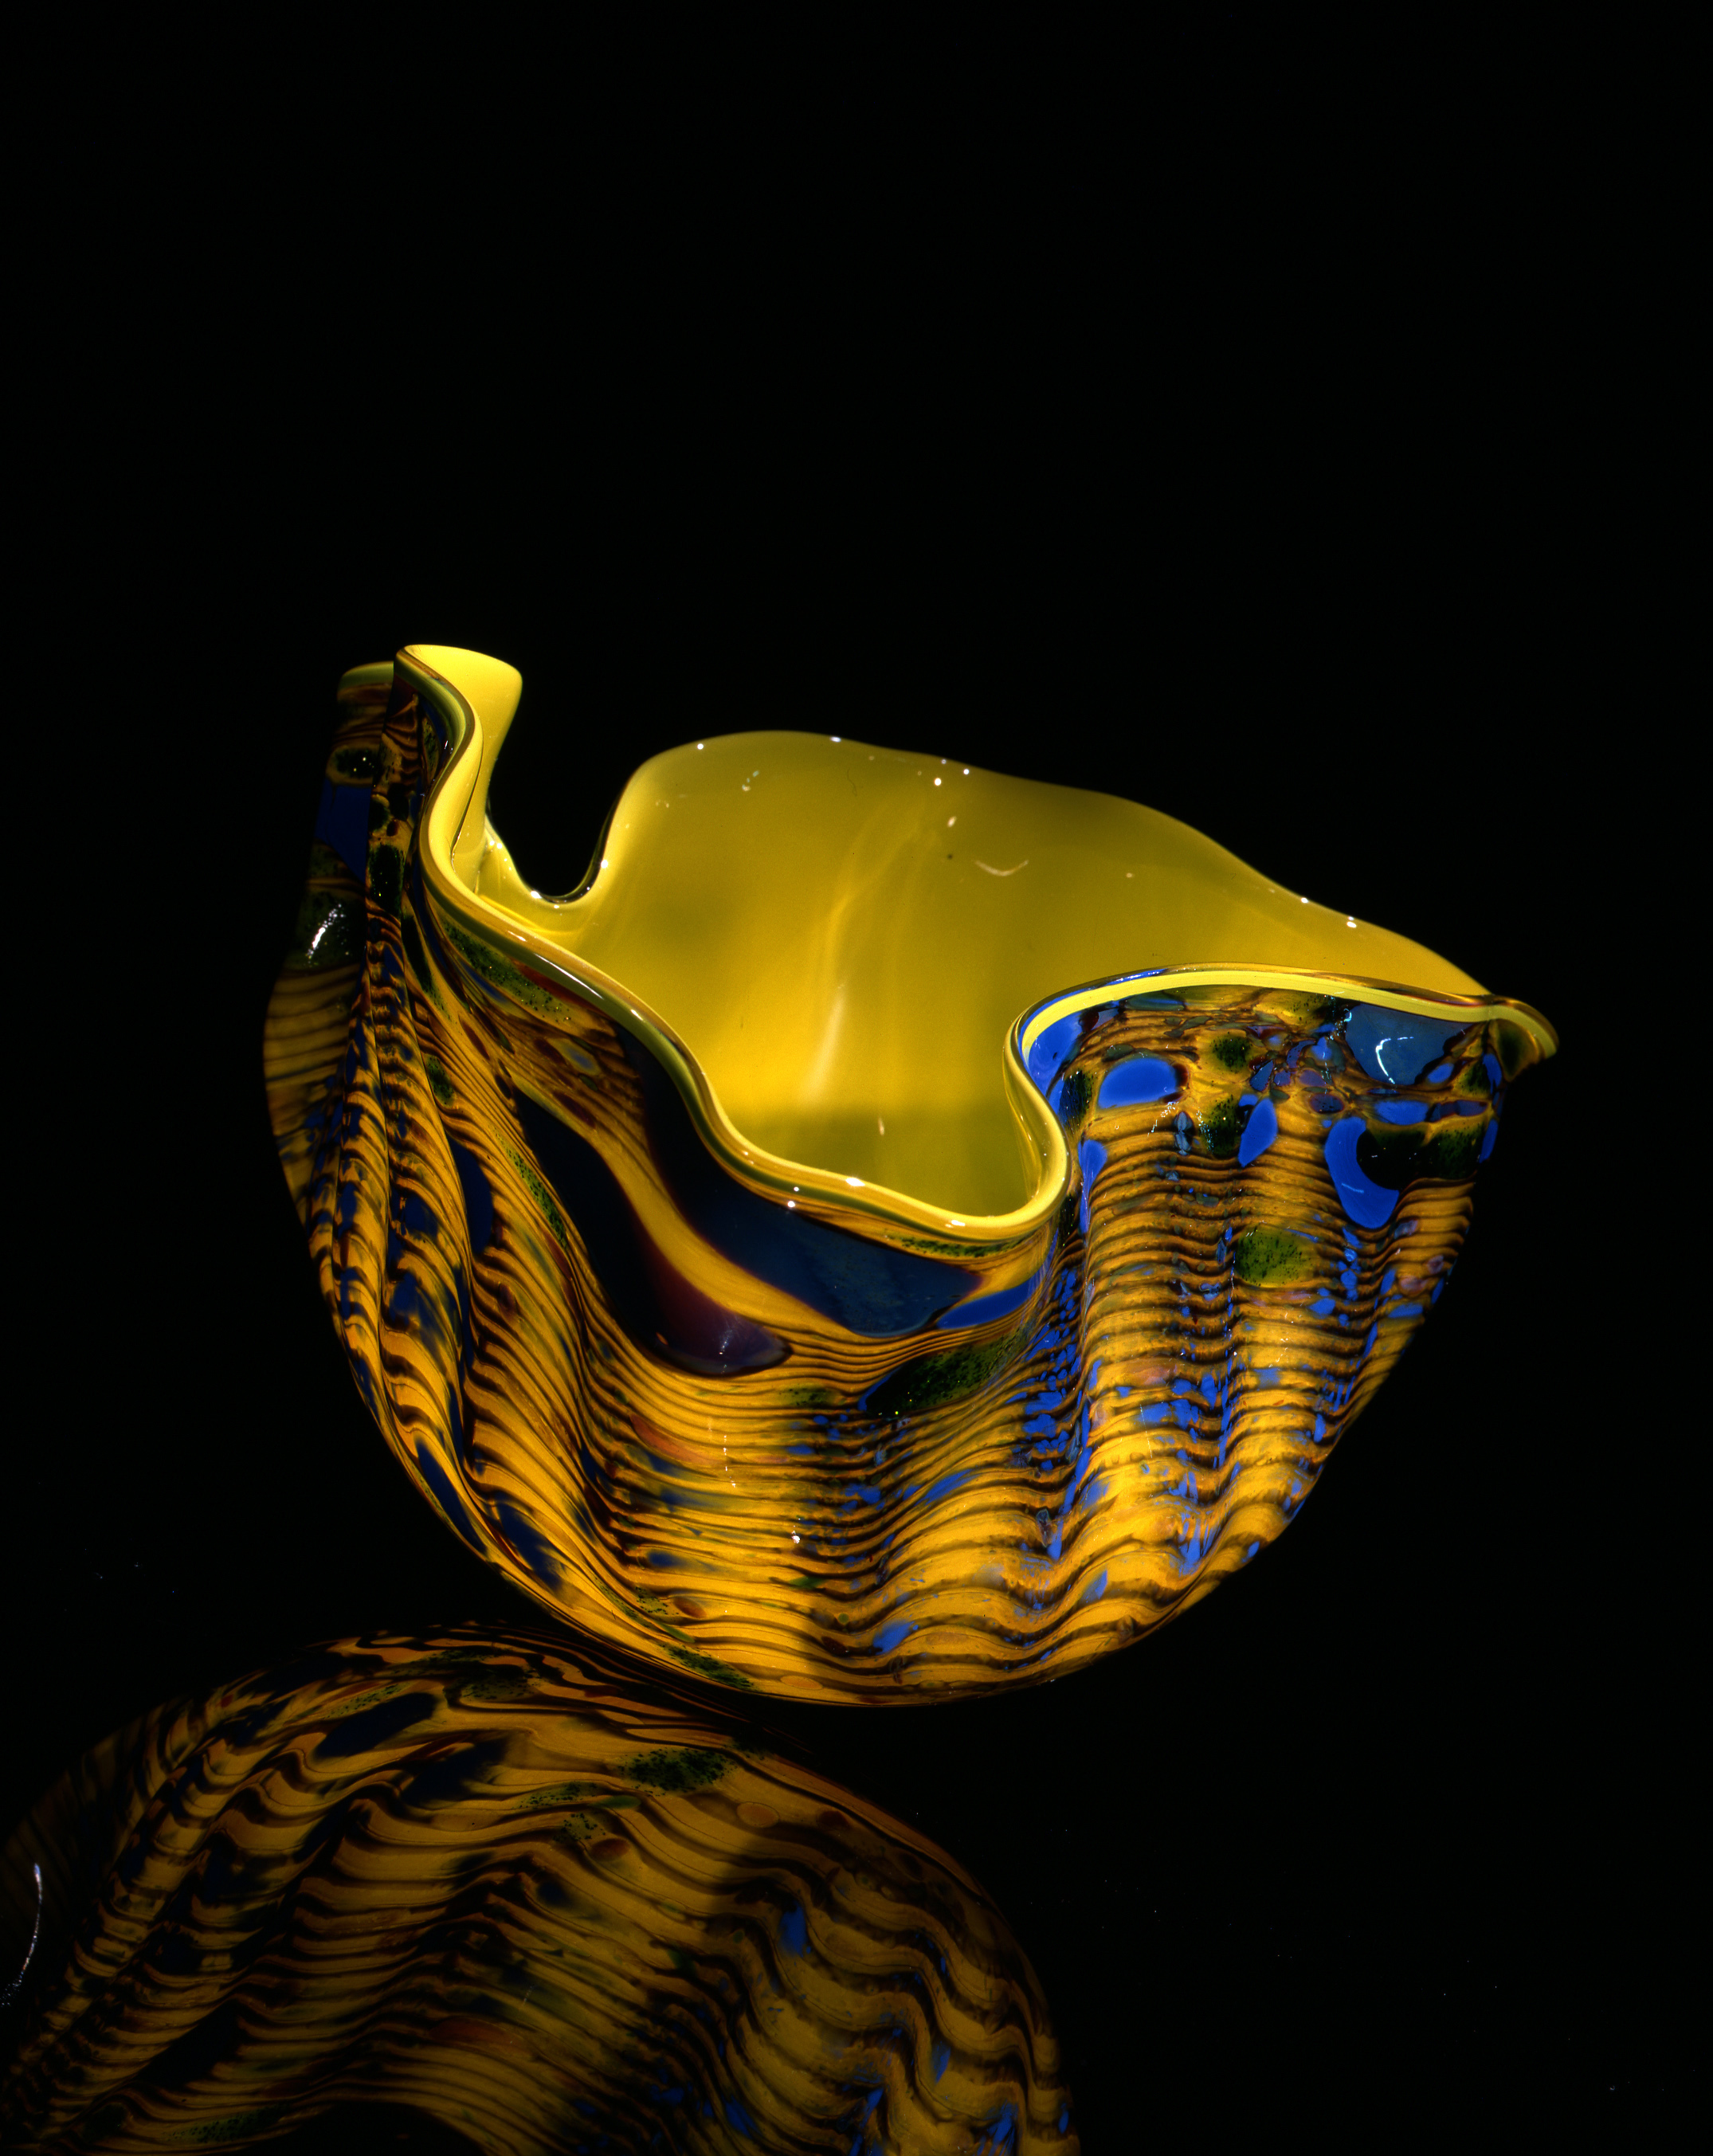 Dale Chihuly, Citron Macchia with Oxblood and Sea Blue Jimmies (1982, glass, 5 x 7 x 7inches), DC.119